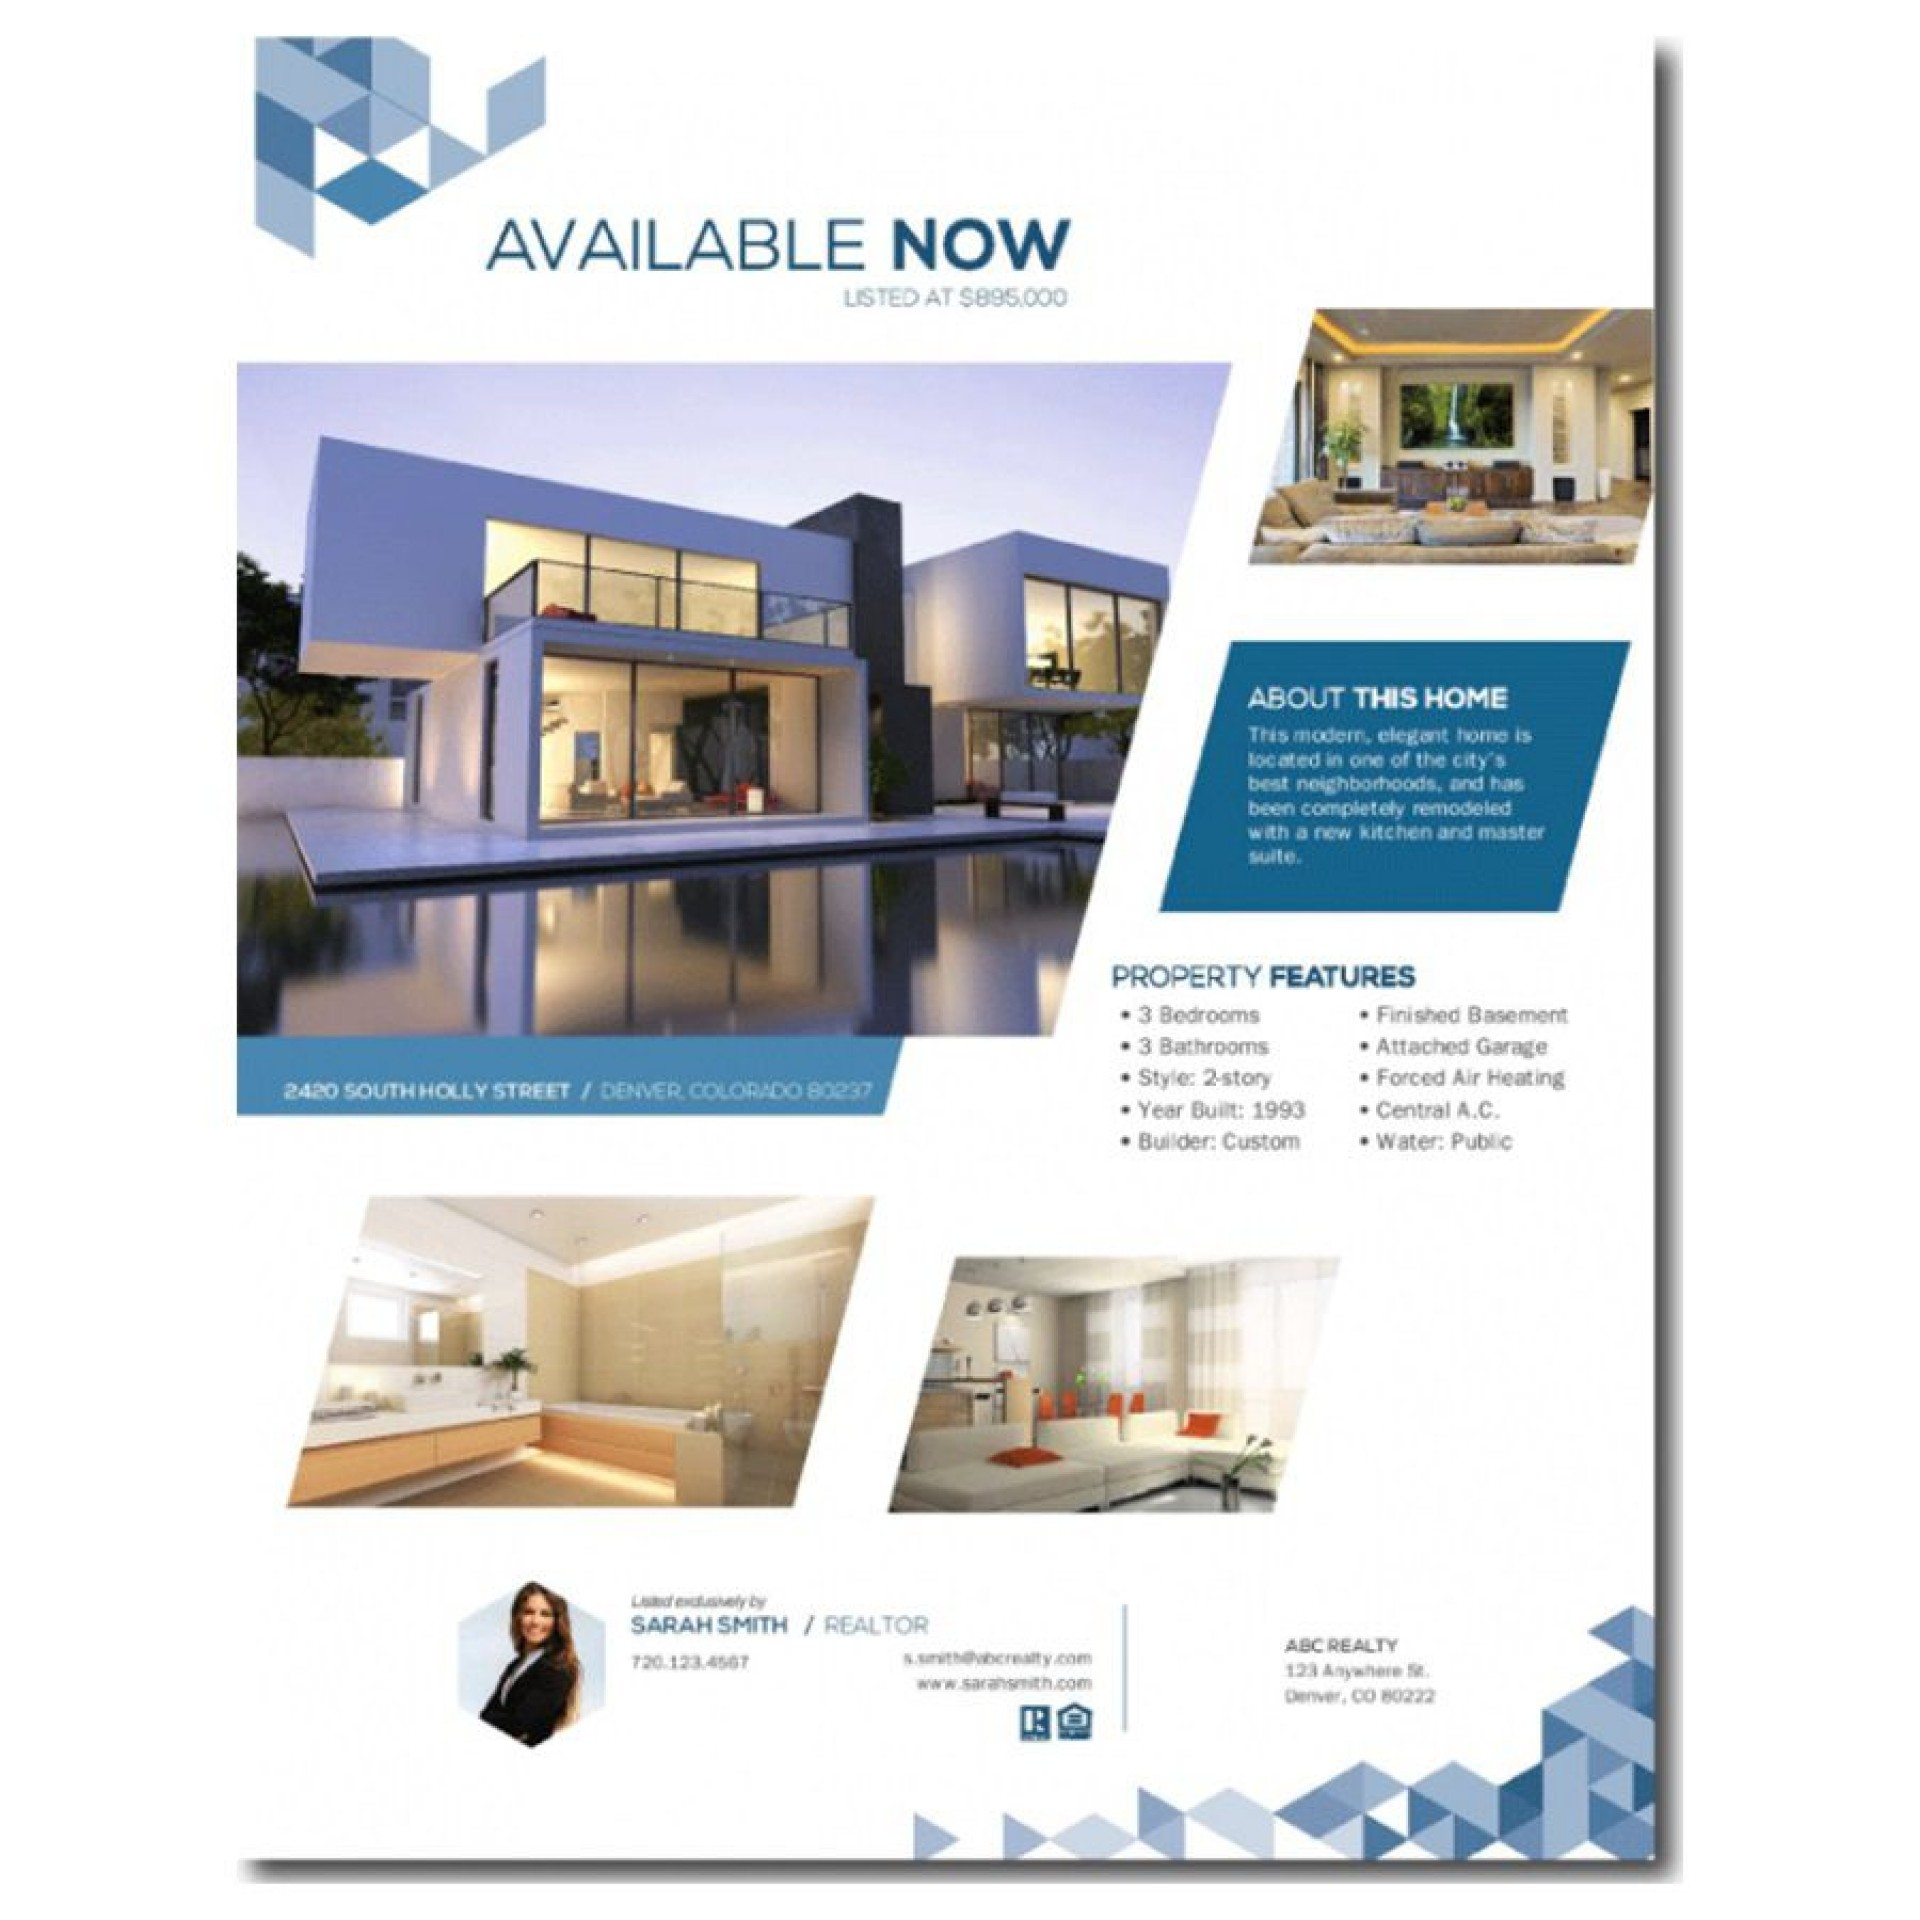 002 Staggering Real Estate Ad Template Image  Templates Commercial Free Listing Flyer Instagram1920